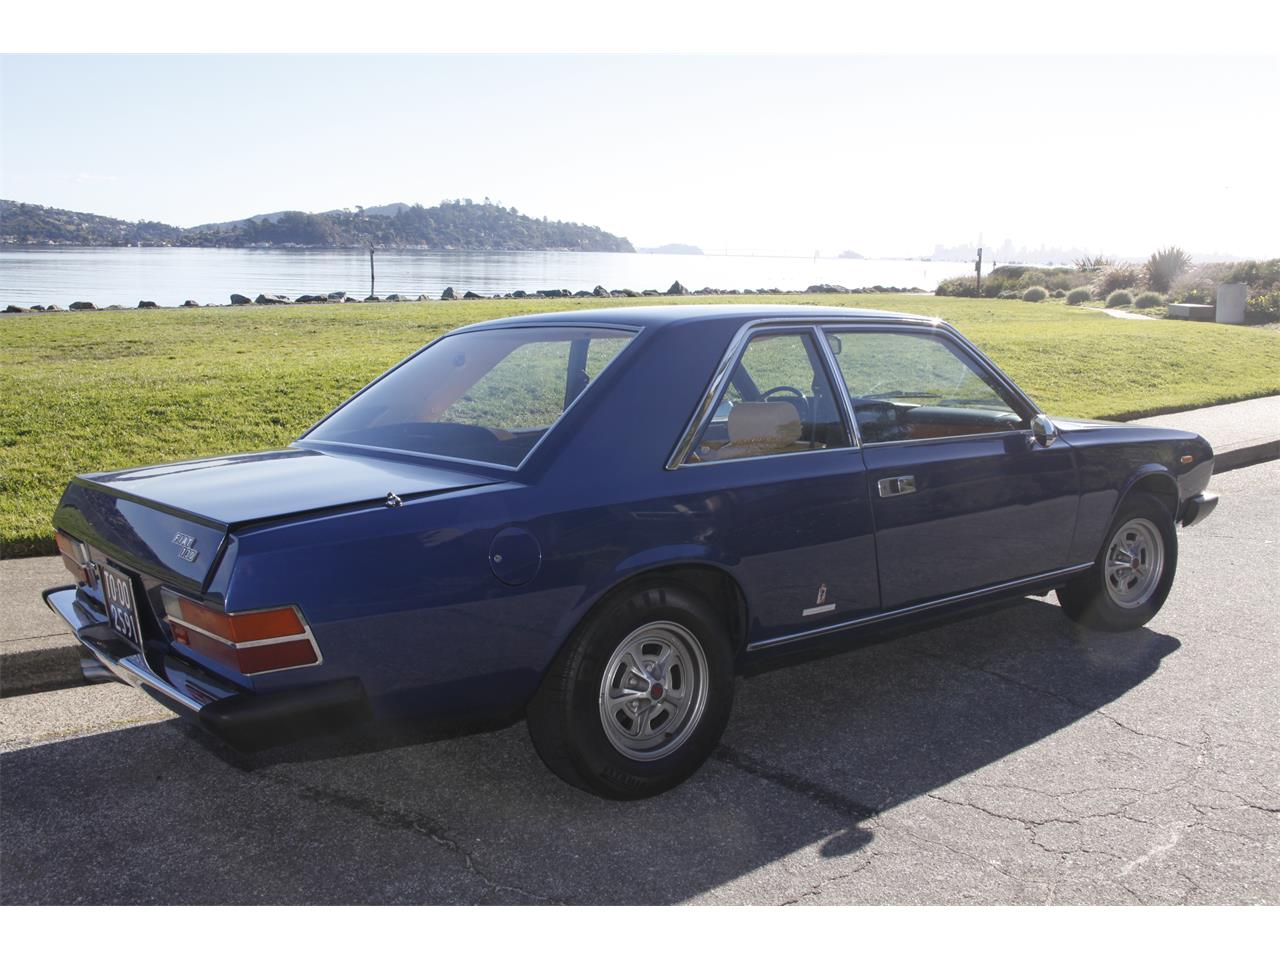 Large Picture of '73 Fiat 130 located in California - $29,900.00 Offered by a Private Seller - PC33